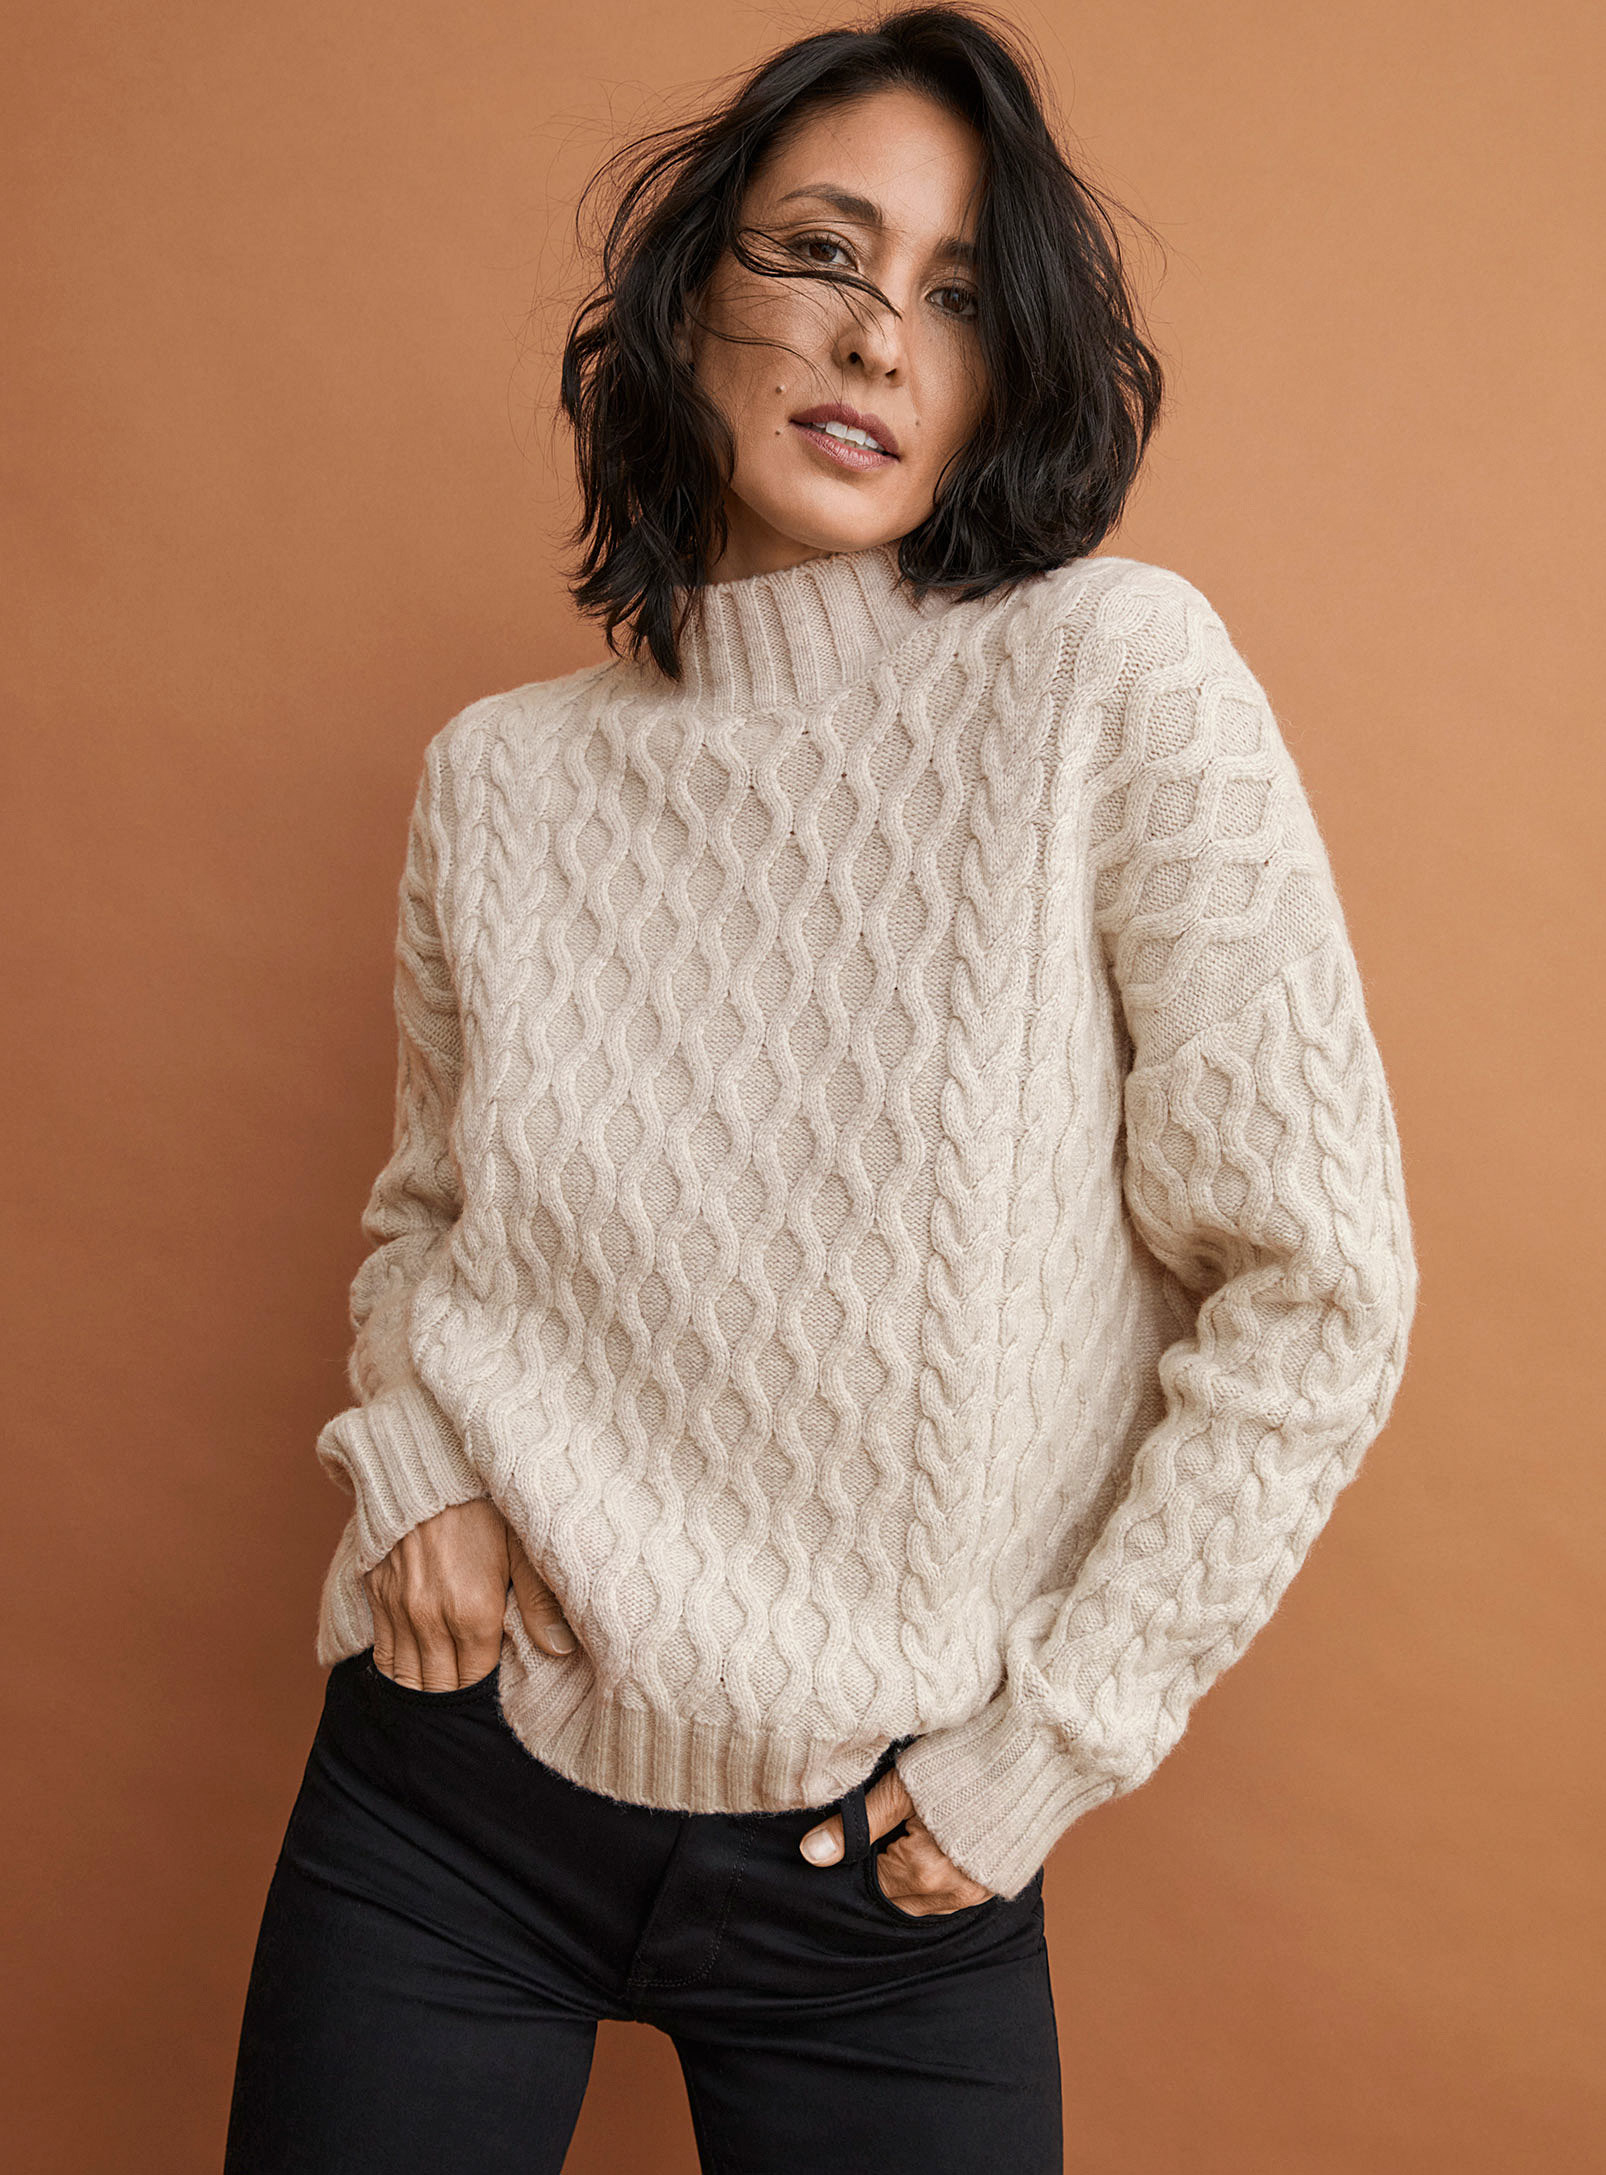 A person wearing a sweater with a wavy knit pattern